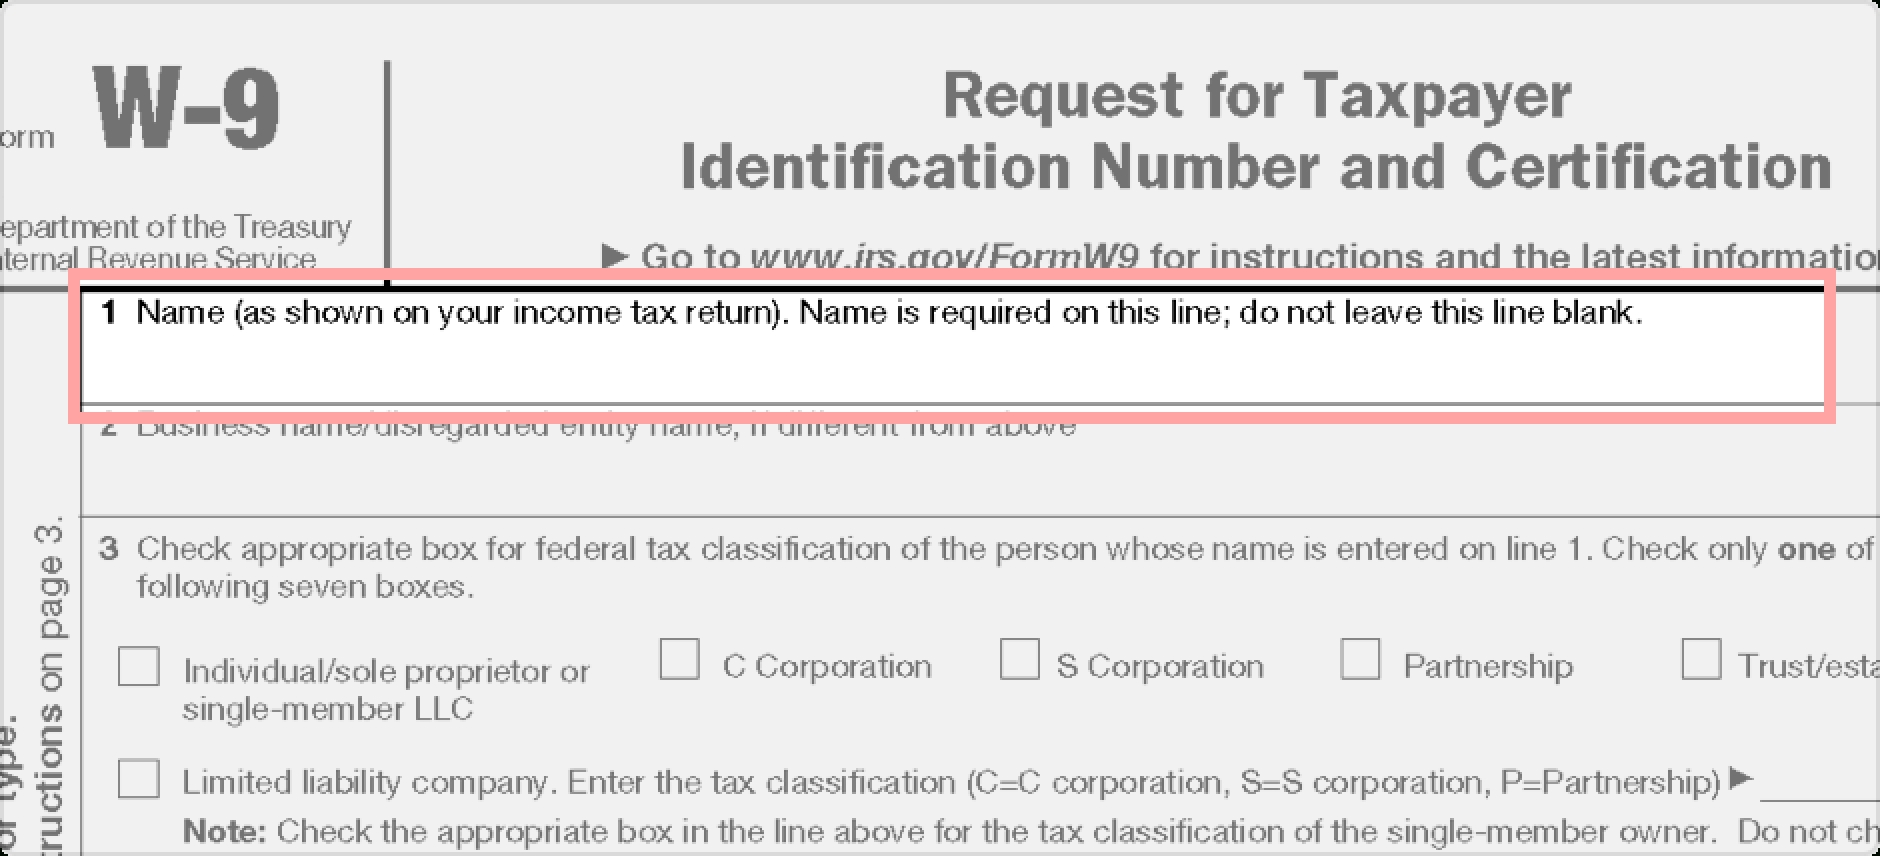 W-9 Form: Fillable, Printable, Download Free. 2020 Instructions-Free Printable W-9 Form 2021